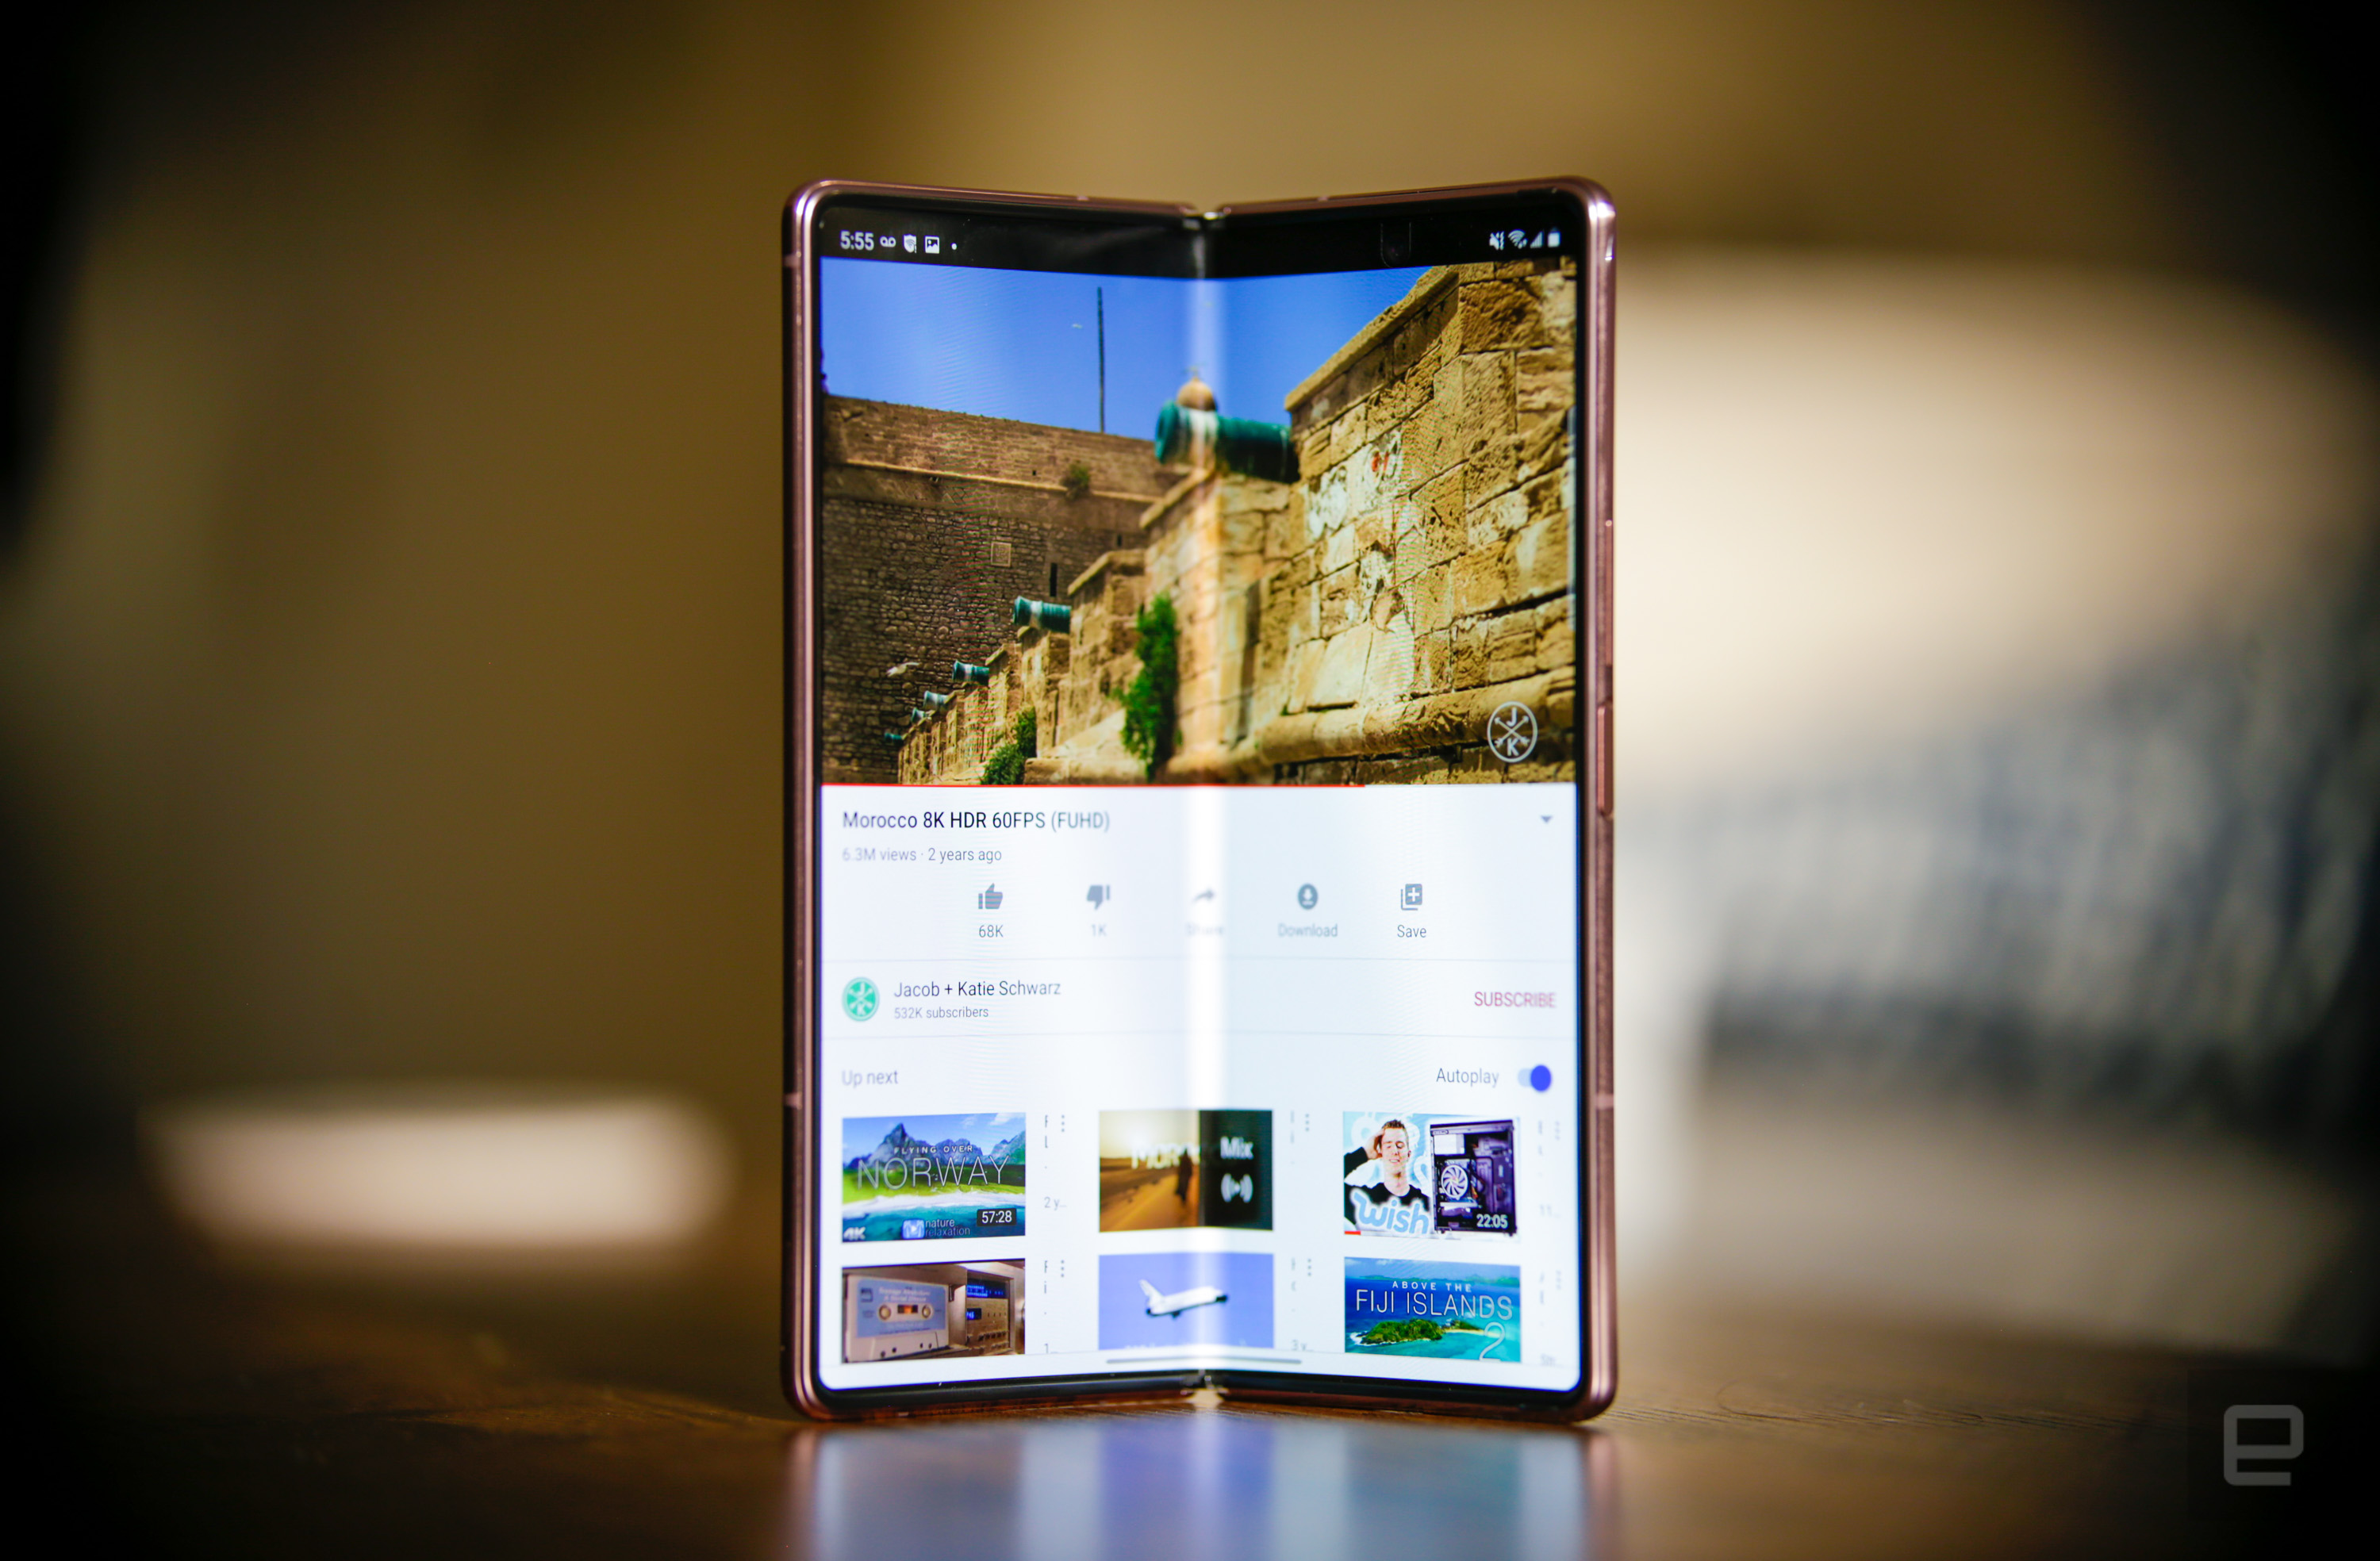 The Samsung Galaxy Z Fold 2 standing in portrait orientation on a wooden table with its screen partly folded and facing the camera. It shows a YouTube video playing.